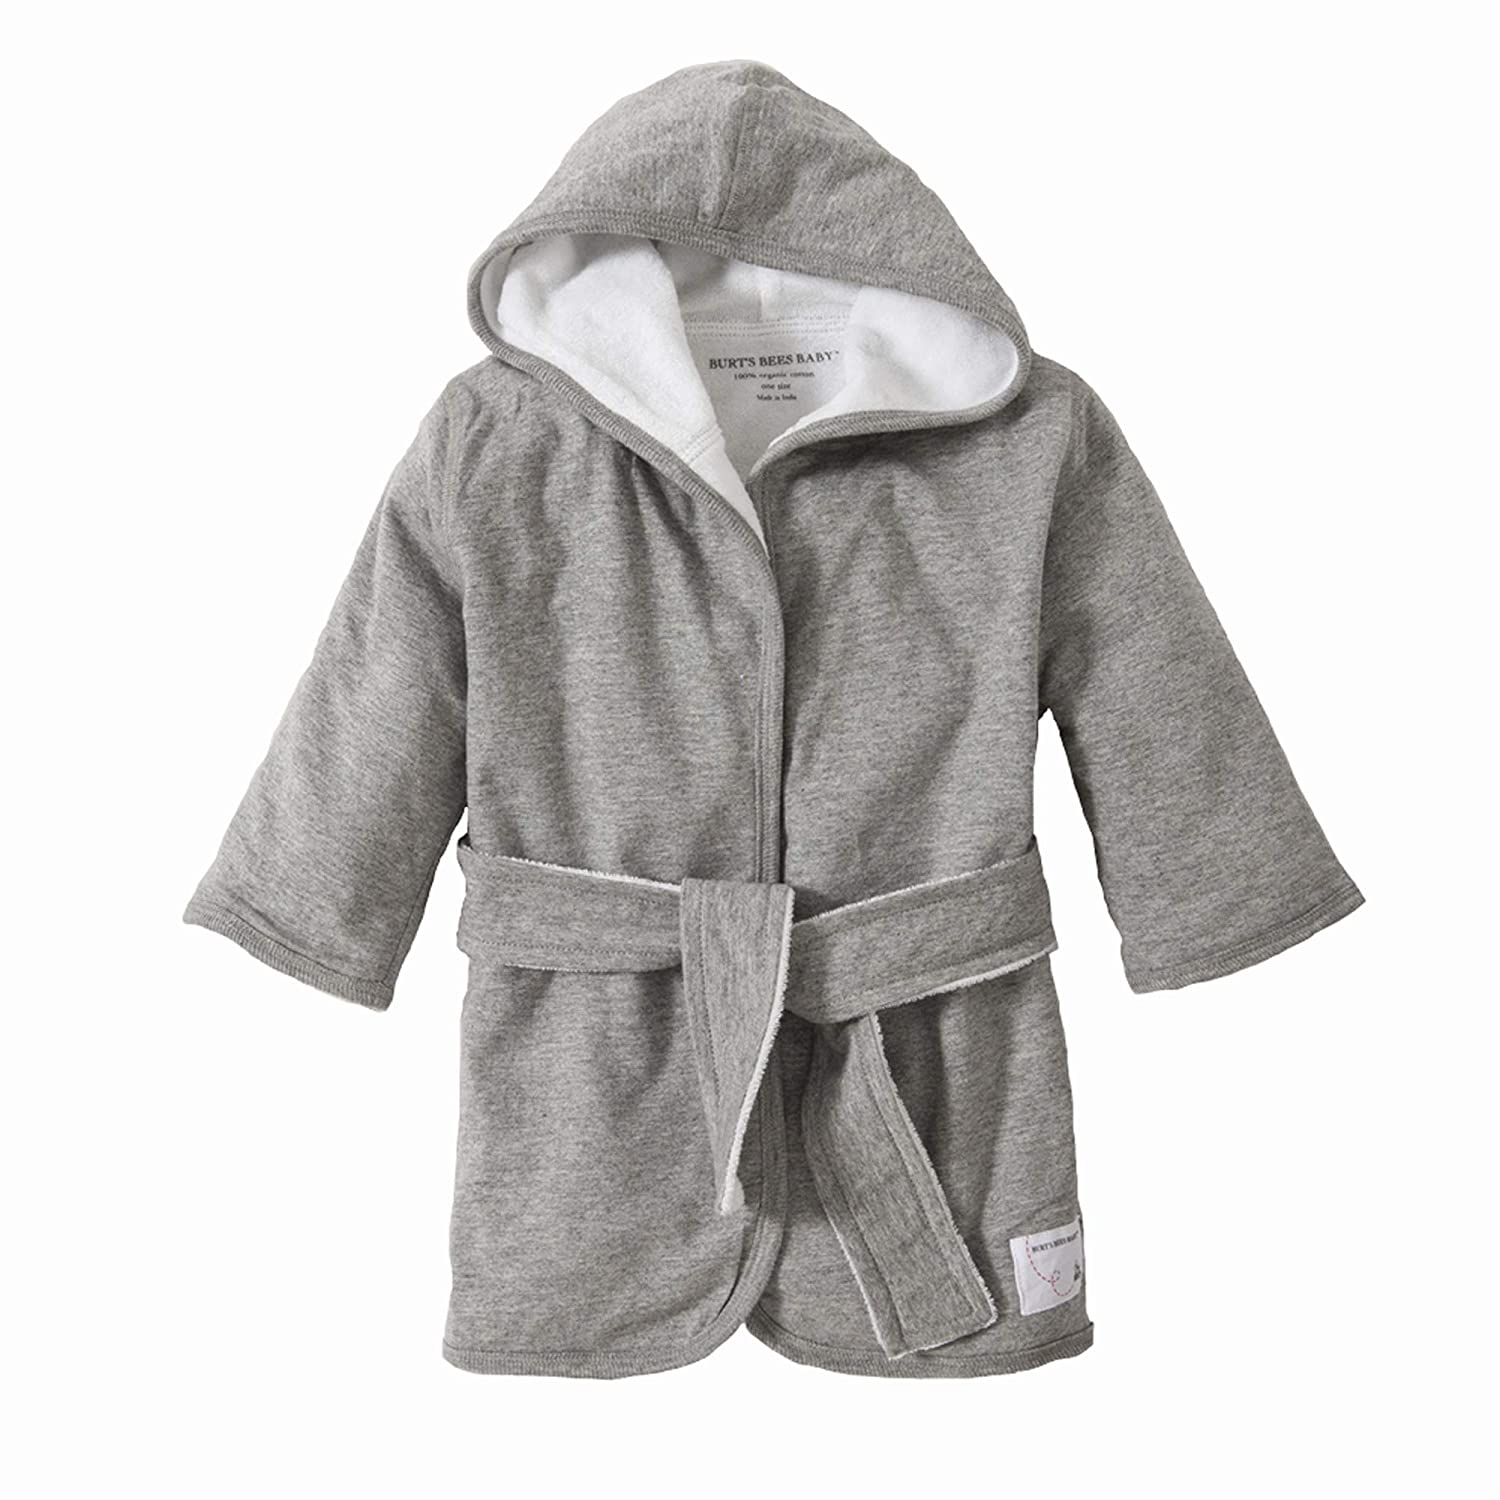 Burt's Bees Baby - Bathrobe, Infant Hooded Robe, Absorbent Knit Terry, 100% Organic Cotton, 0-9 Months (Heather Grey): Baby